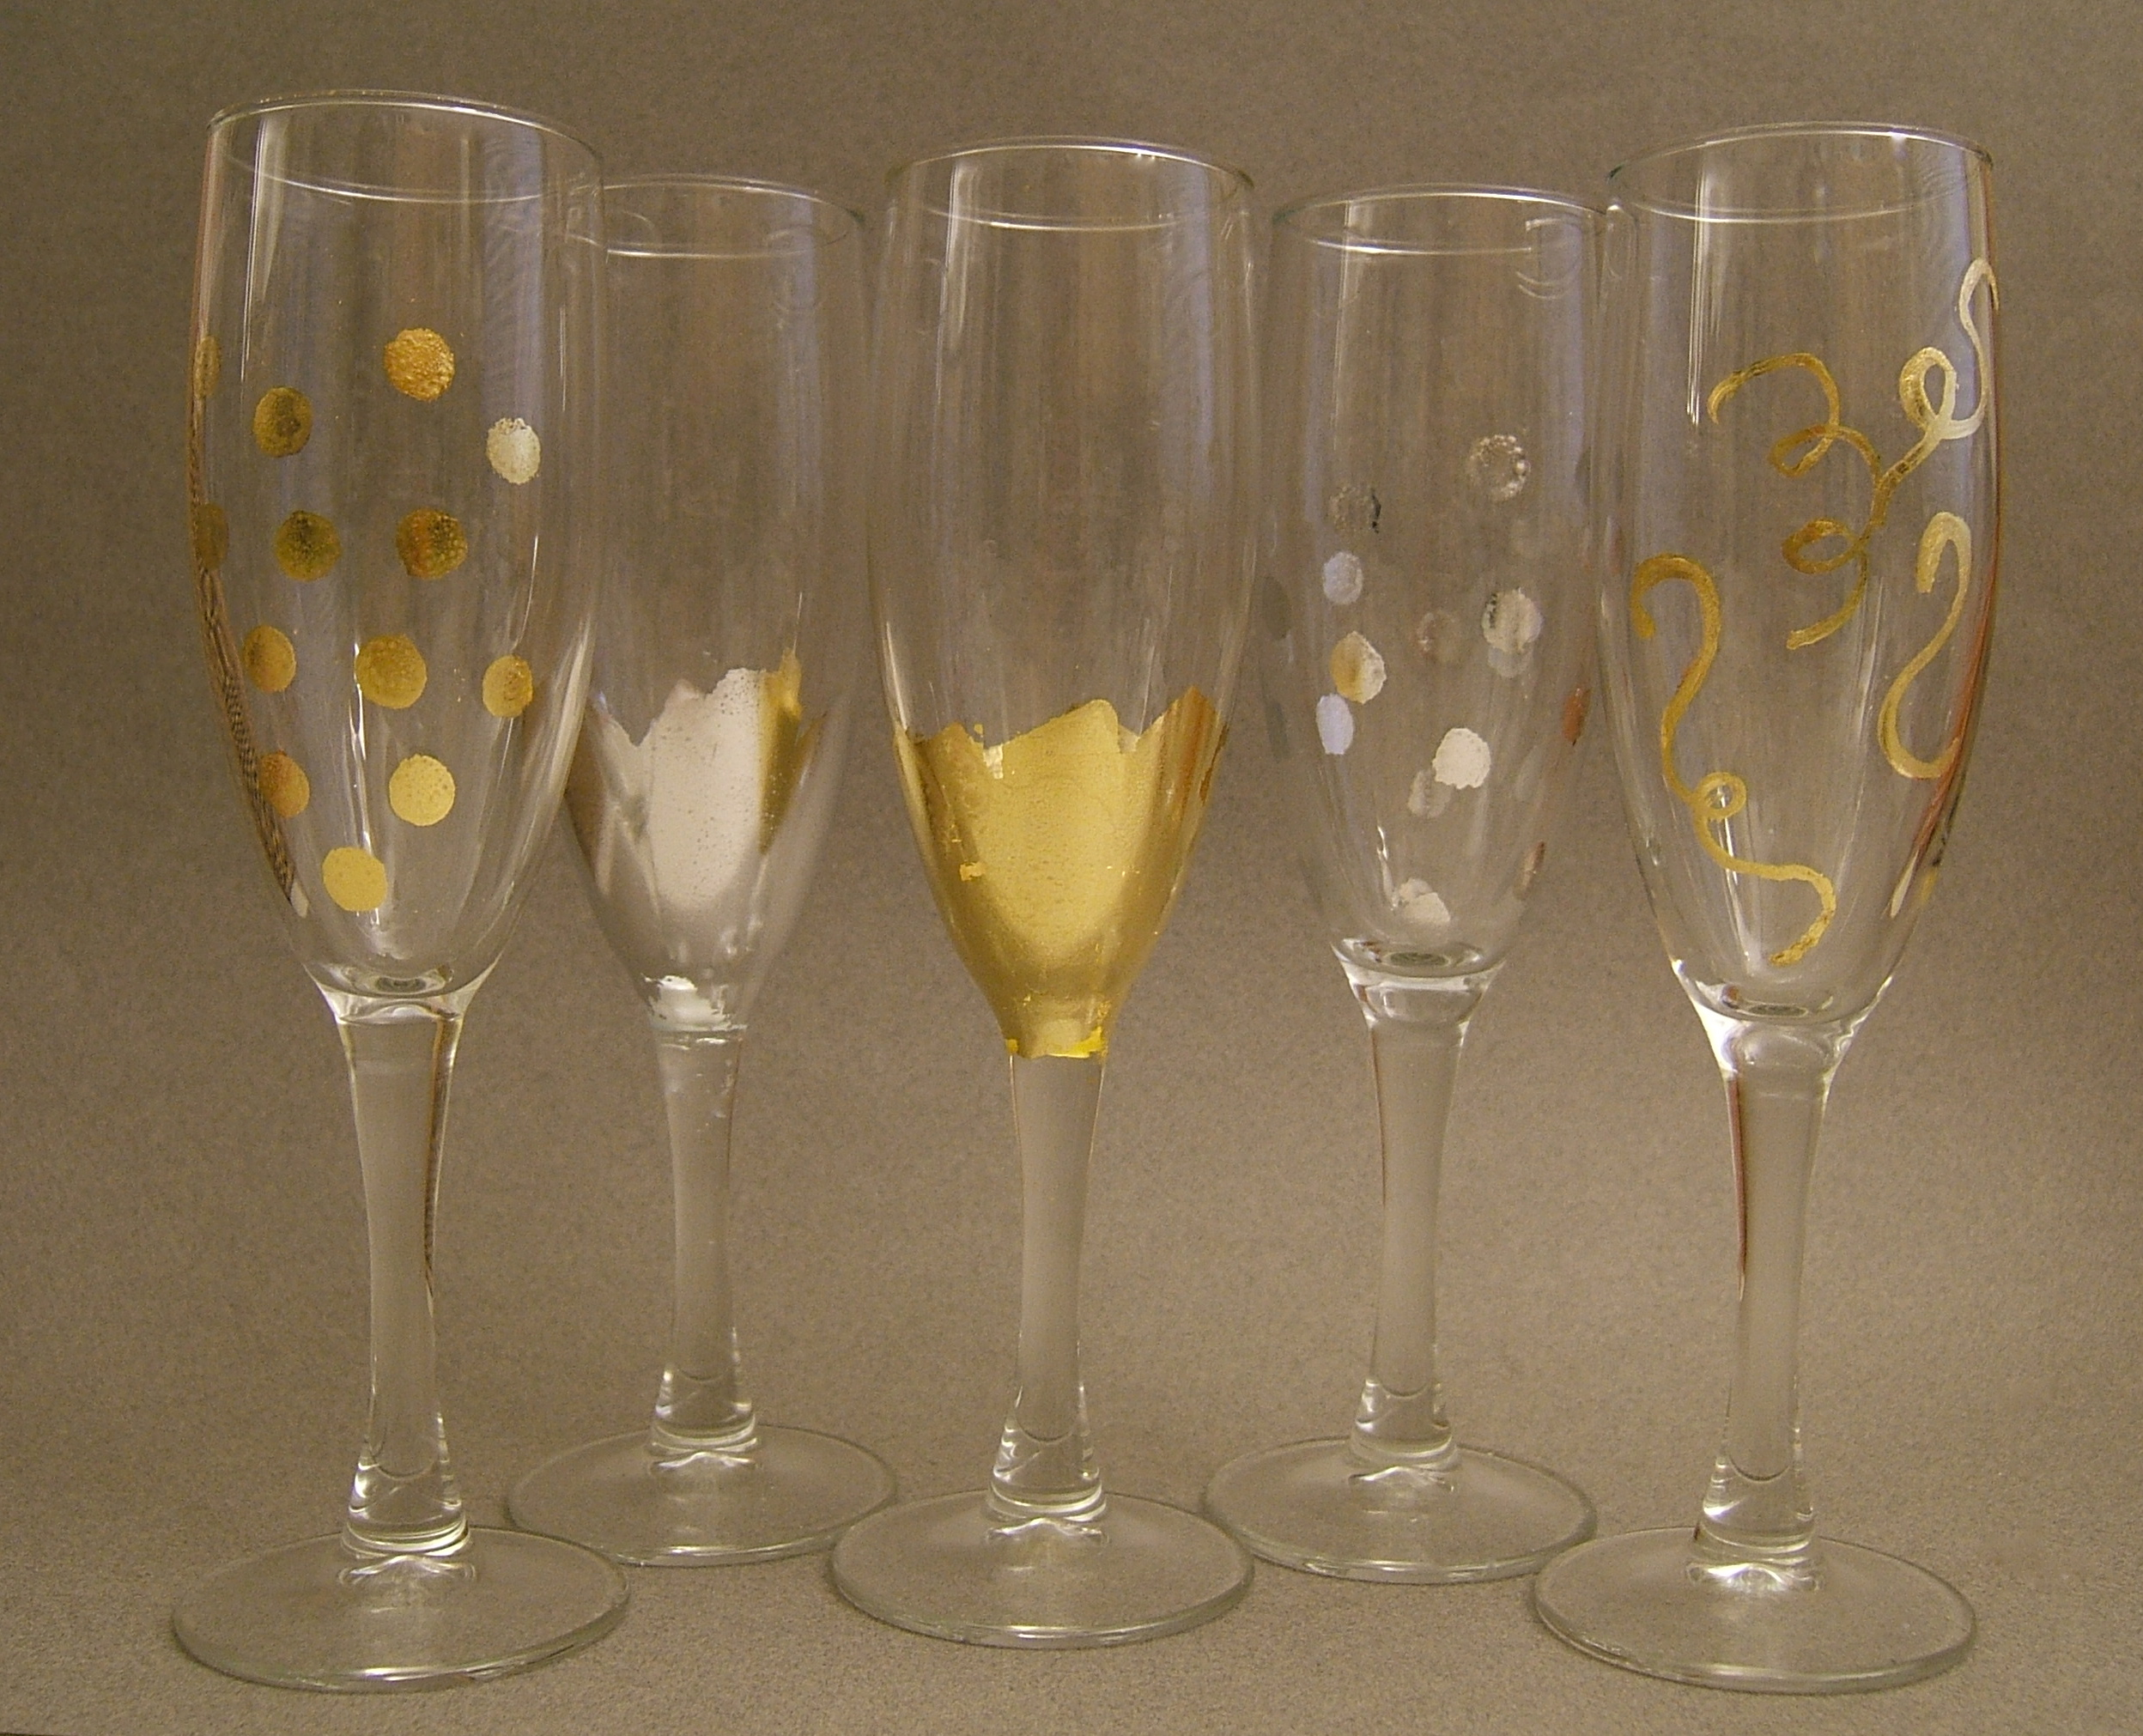 Diy Wedding Champagne Glasses Ideas Diy Gold Leafed Flutes Great Gifts Or Wedding Mementoes